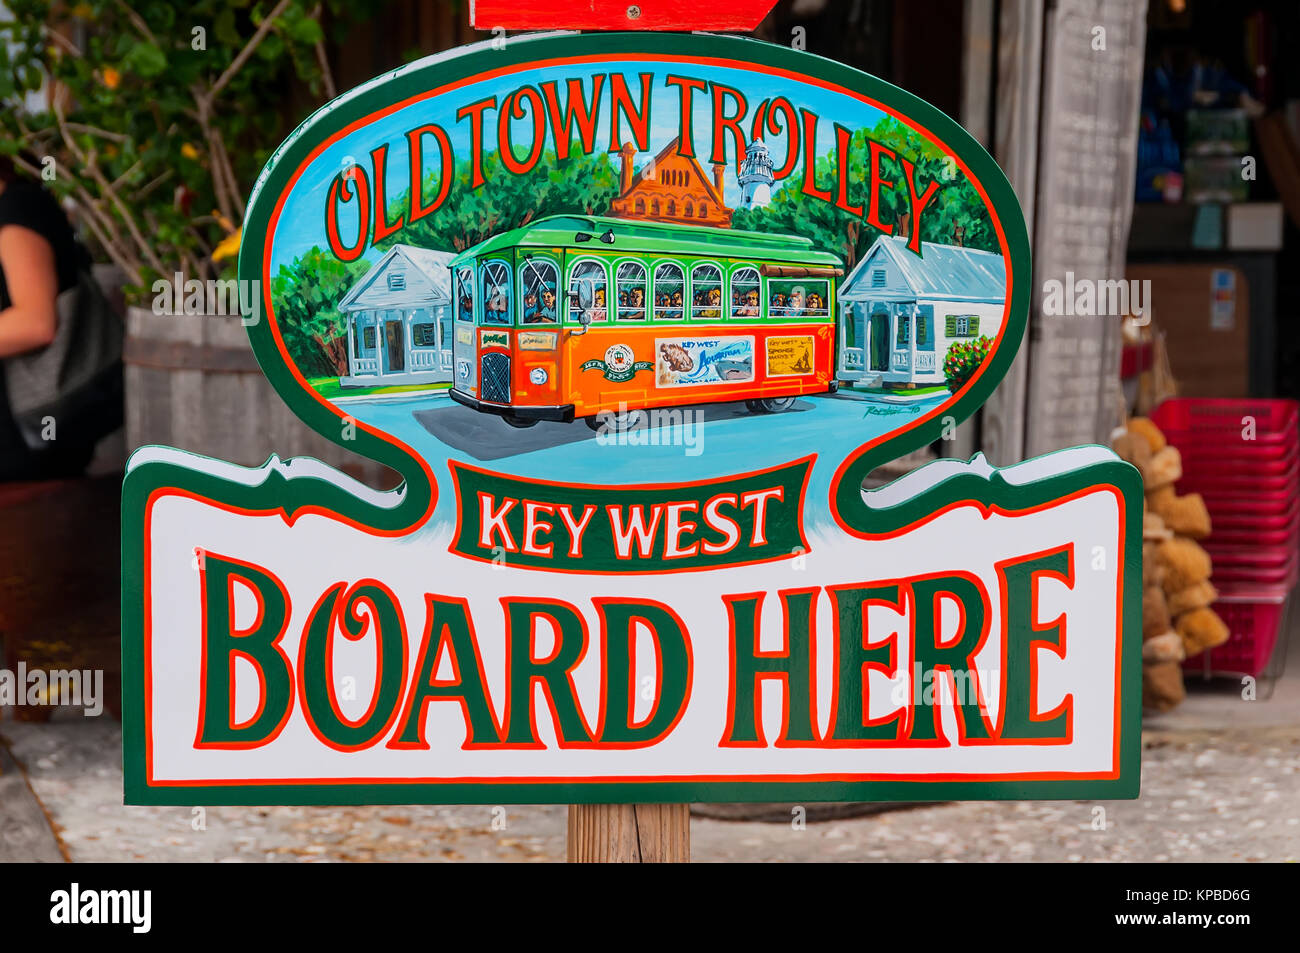 Old Town Trolley Key West Board Here sign for stop on city sightseeing tour, Key West, Florida - Stock Image